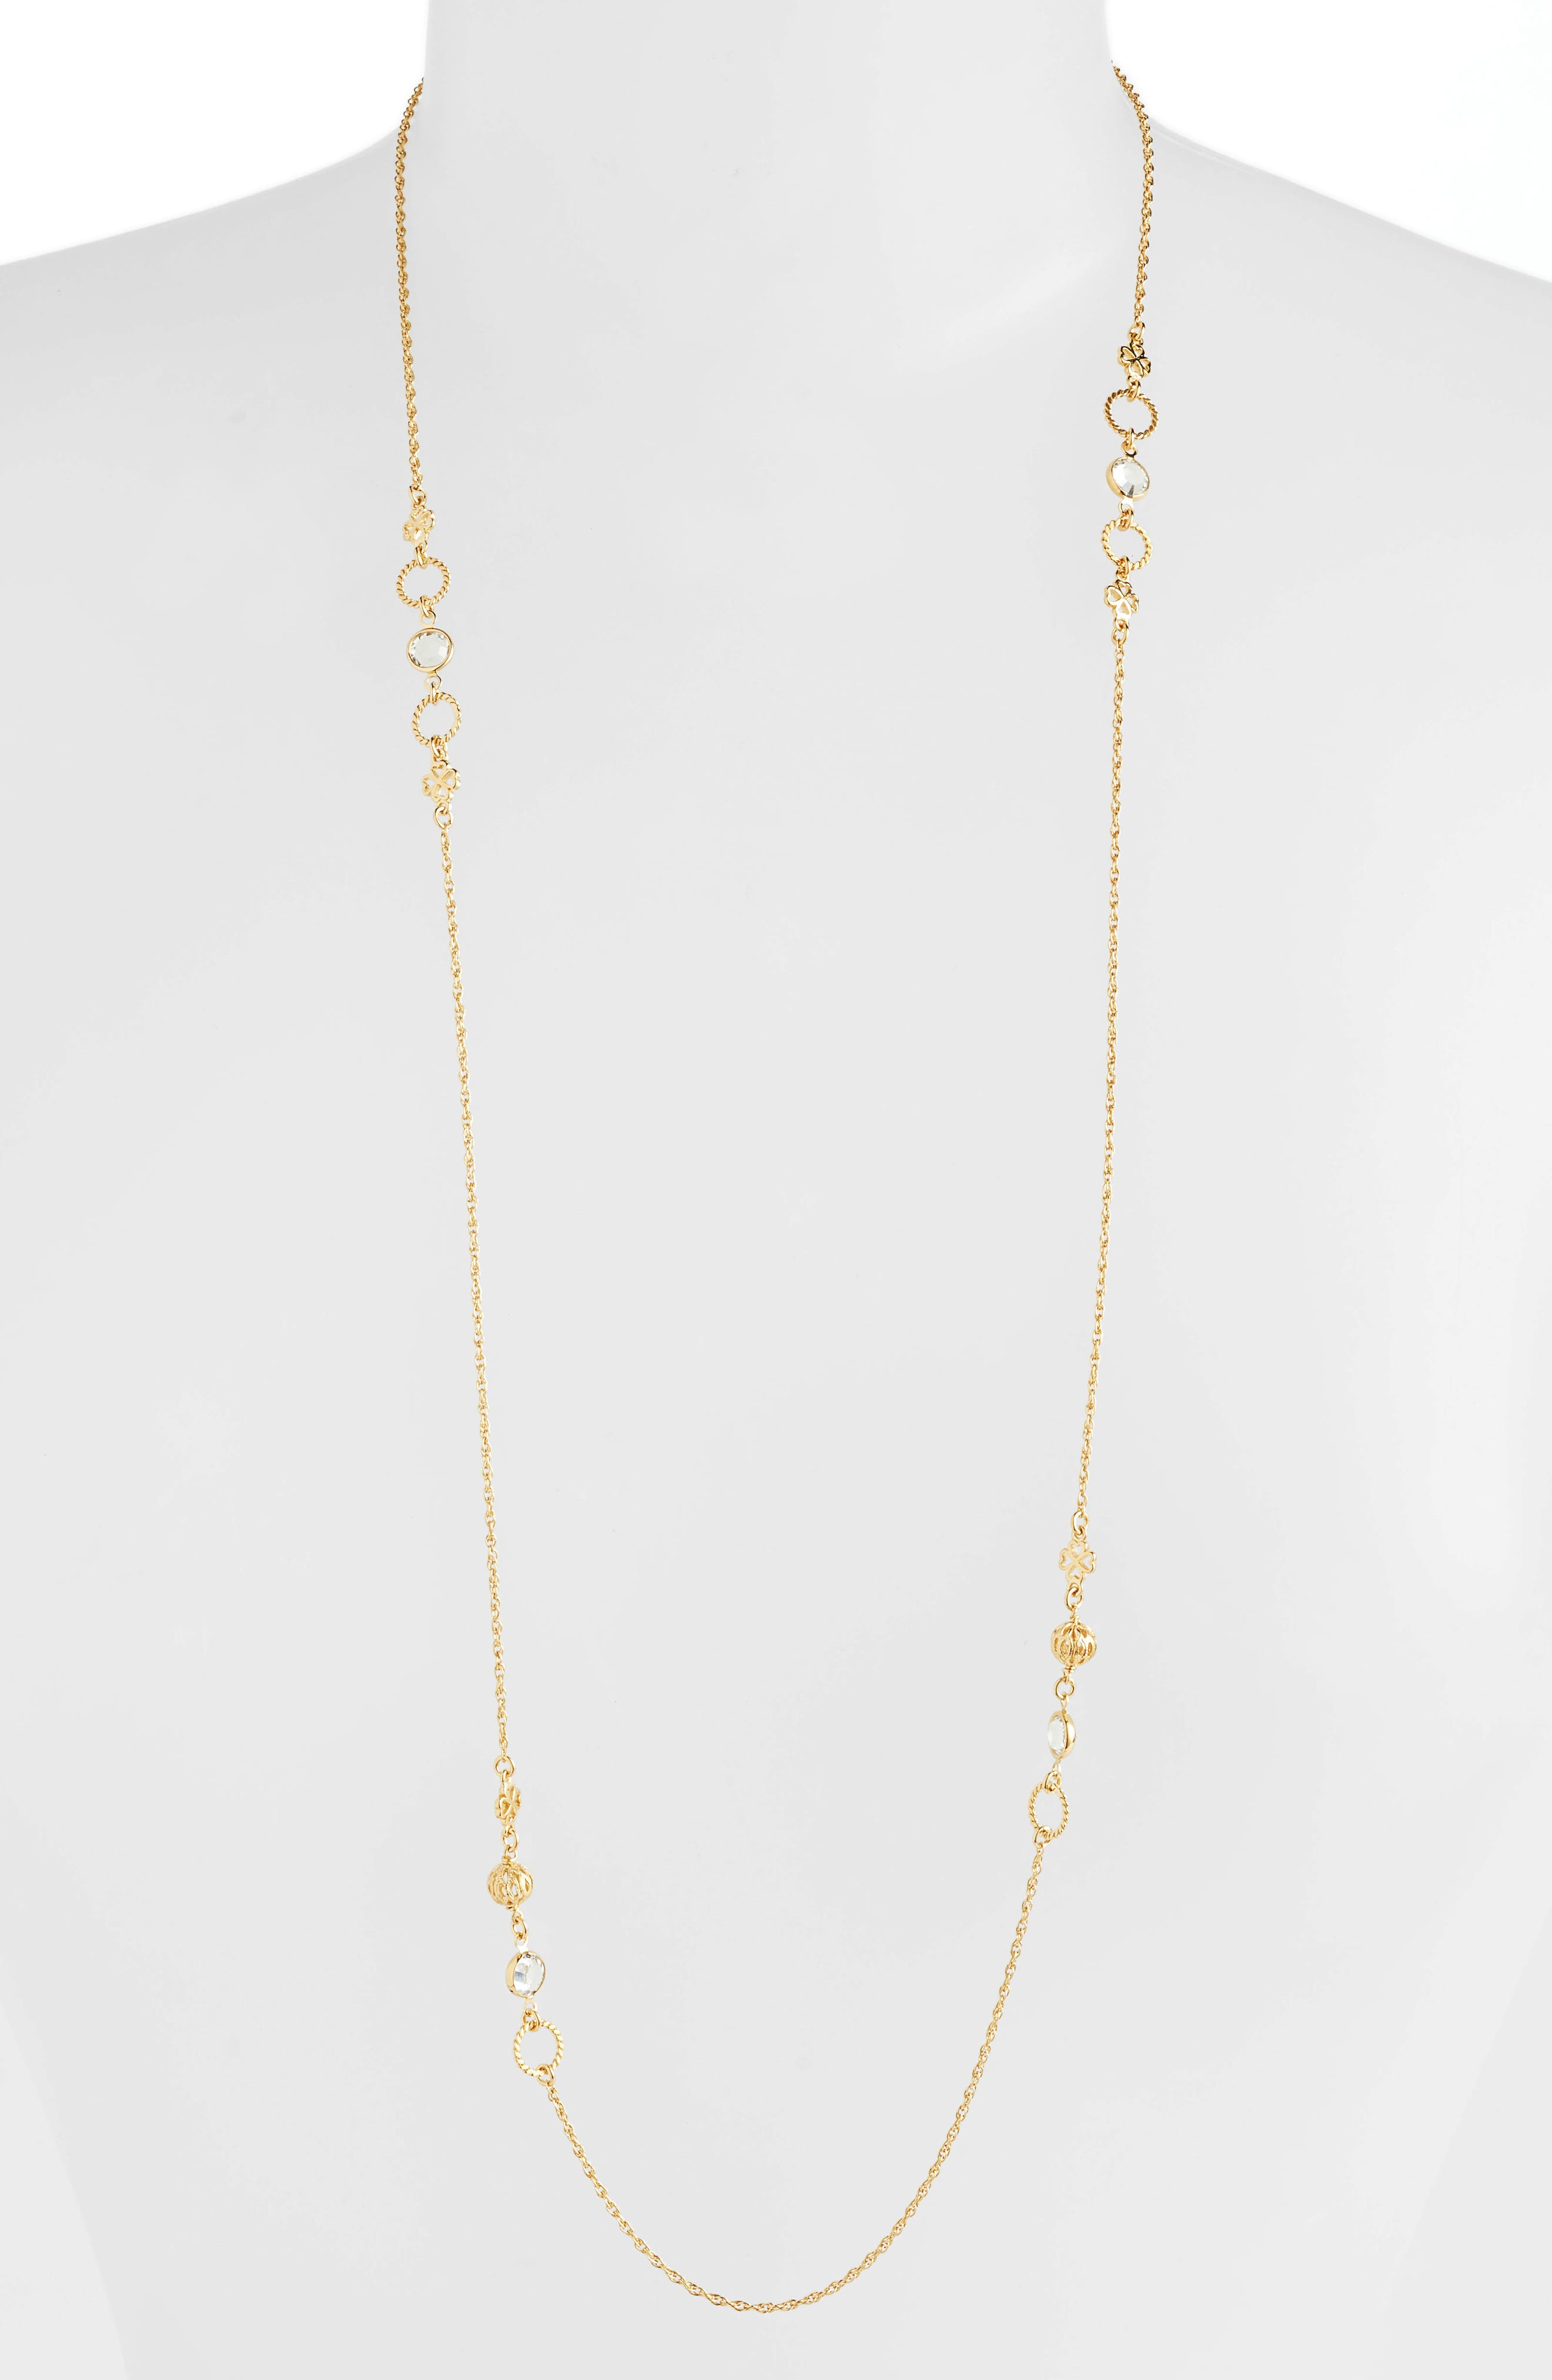 Tresse Long Lariat Necklace,                         Main,                         color, YELLOW GOLD